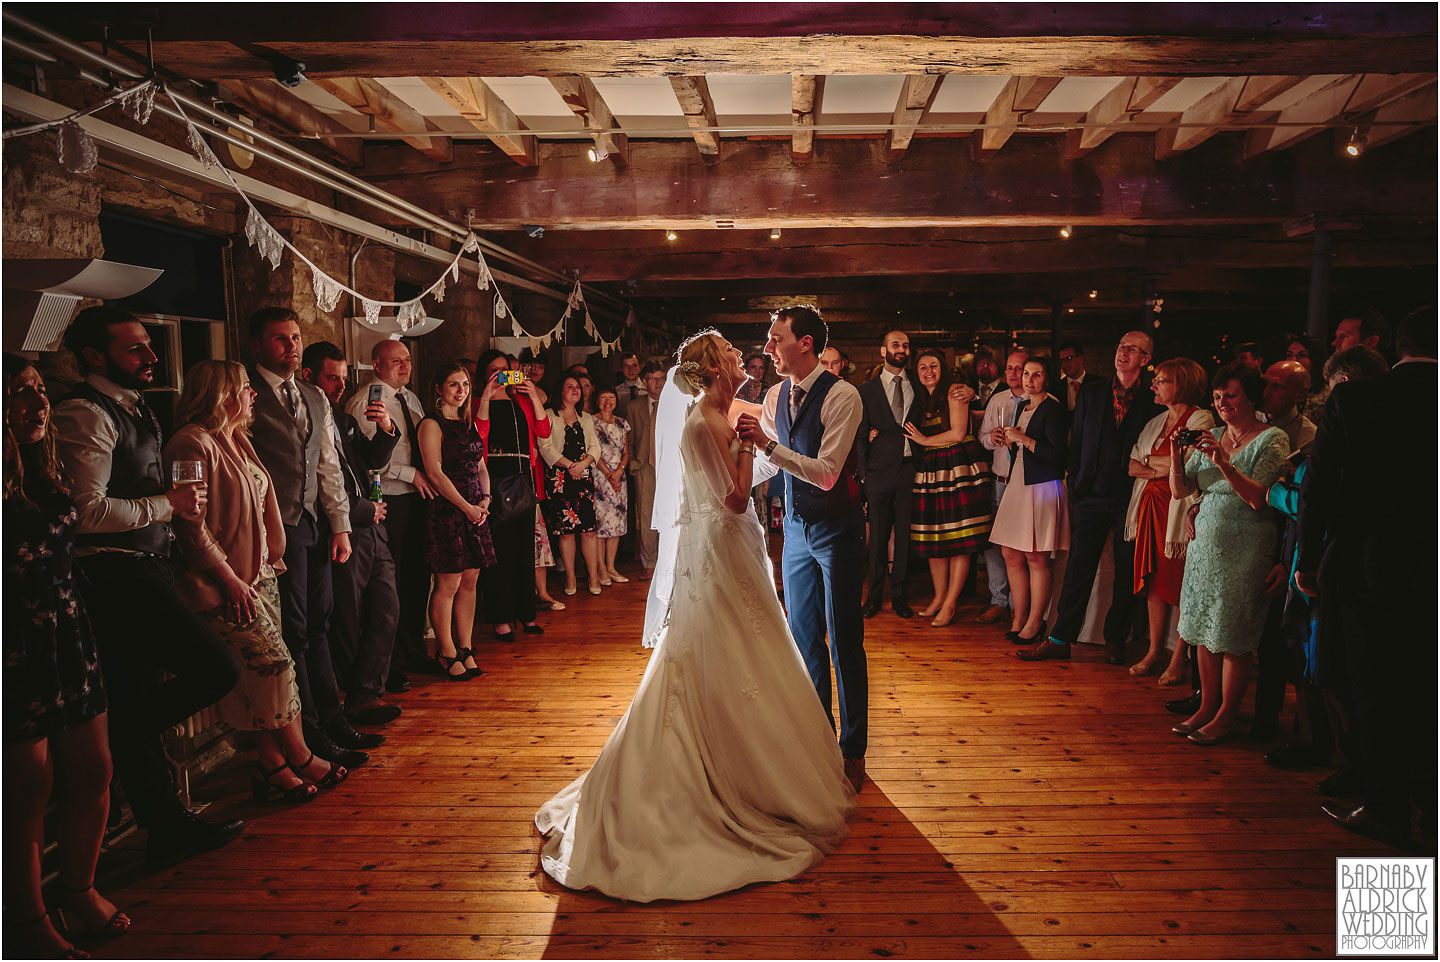 First dance at a wedding at Standedge Tunnel and Visitor Centre in Marsden